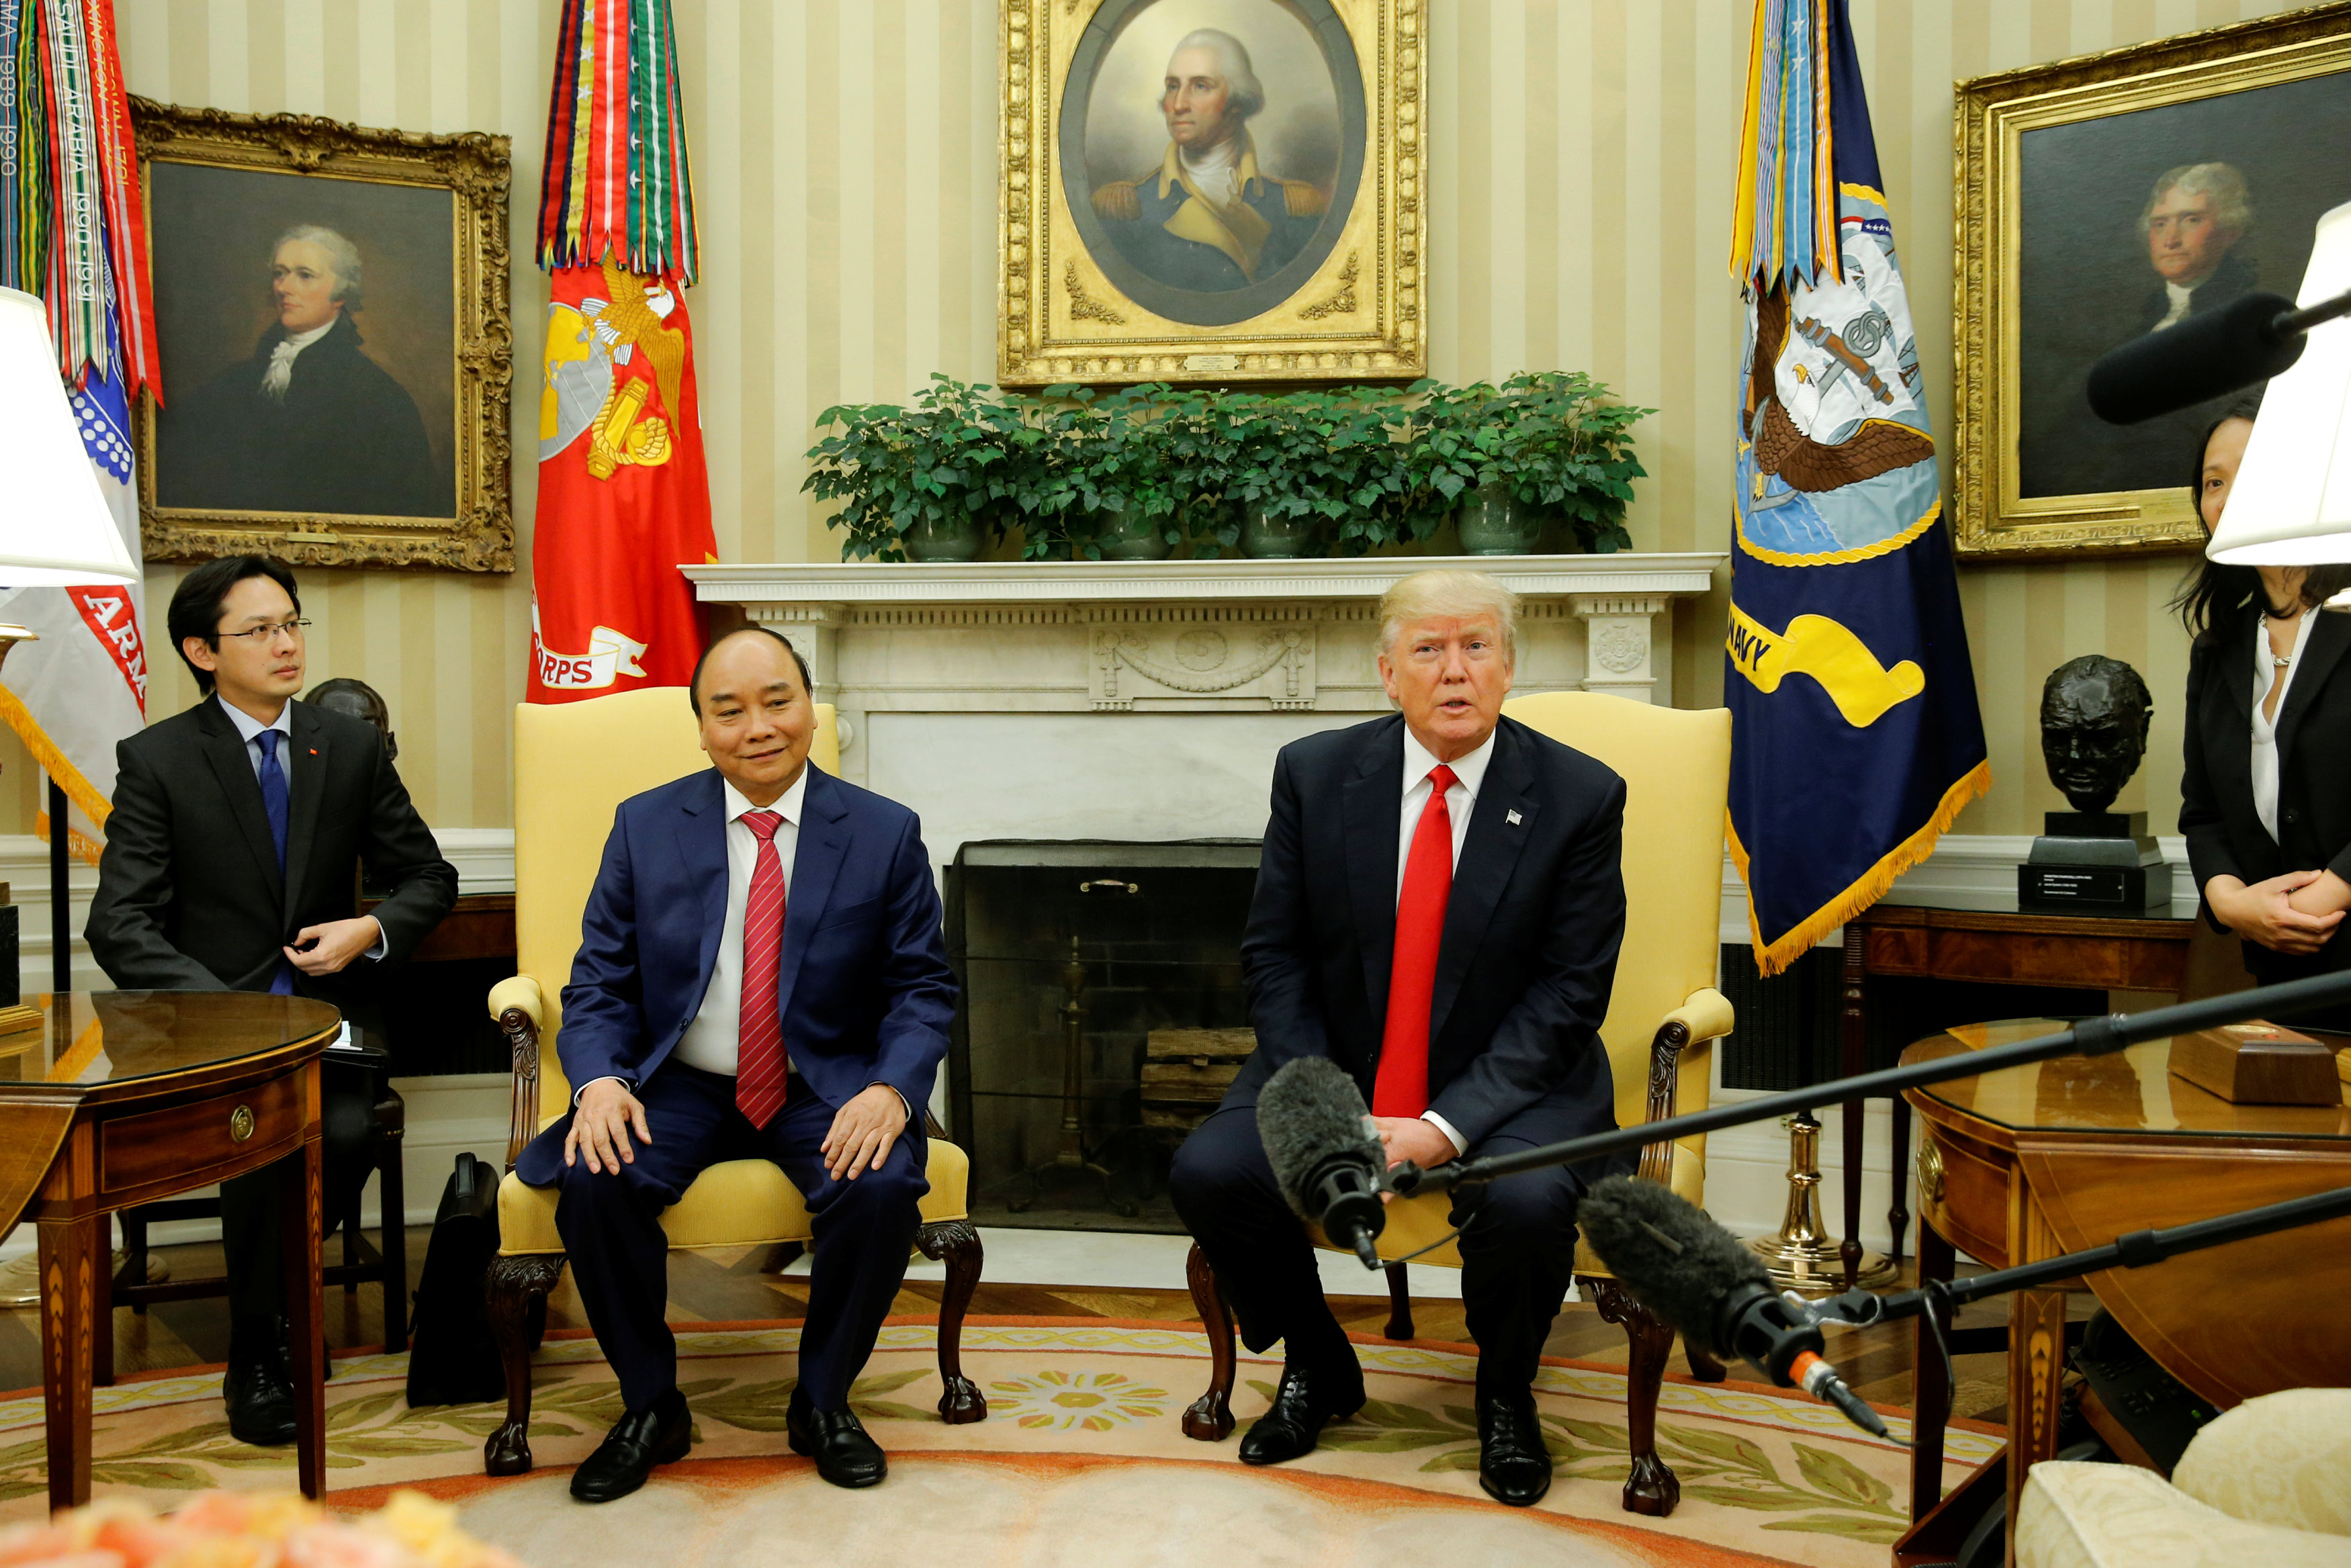 President Donald Trump welcomes Vietnam's Prime Minister Nguyen Xuan Phuc at the White House in Washington on May 31, 2017. REUTERS/Jonathan Ernst)